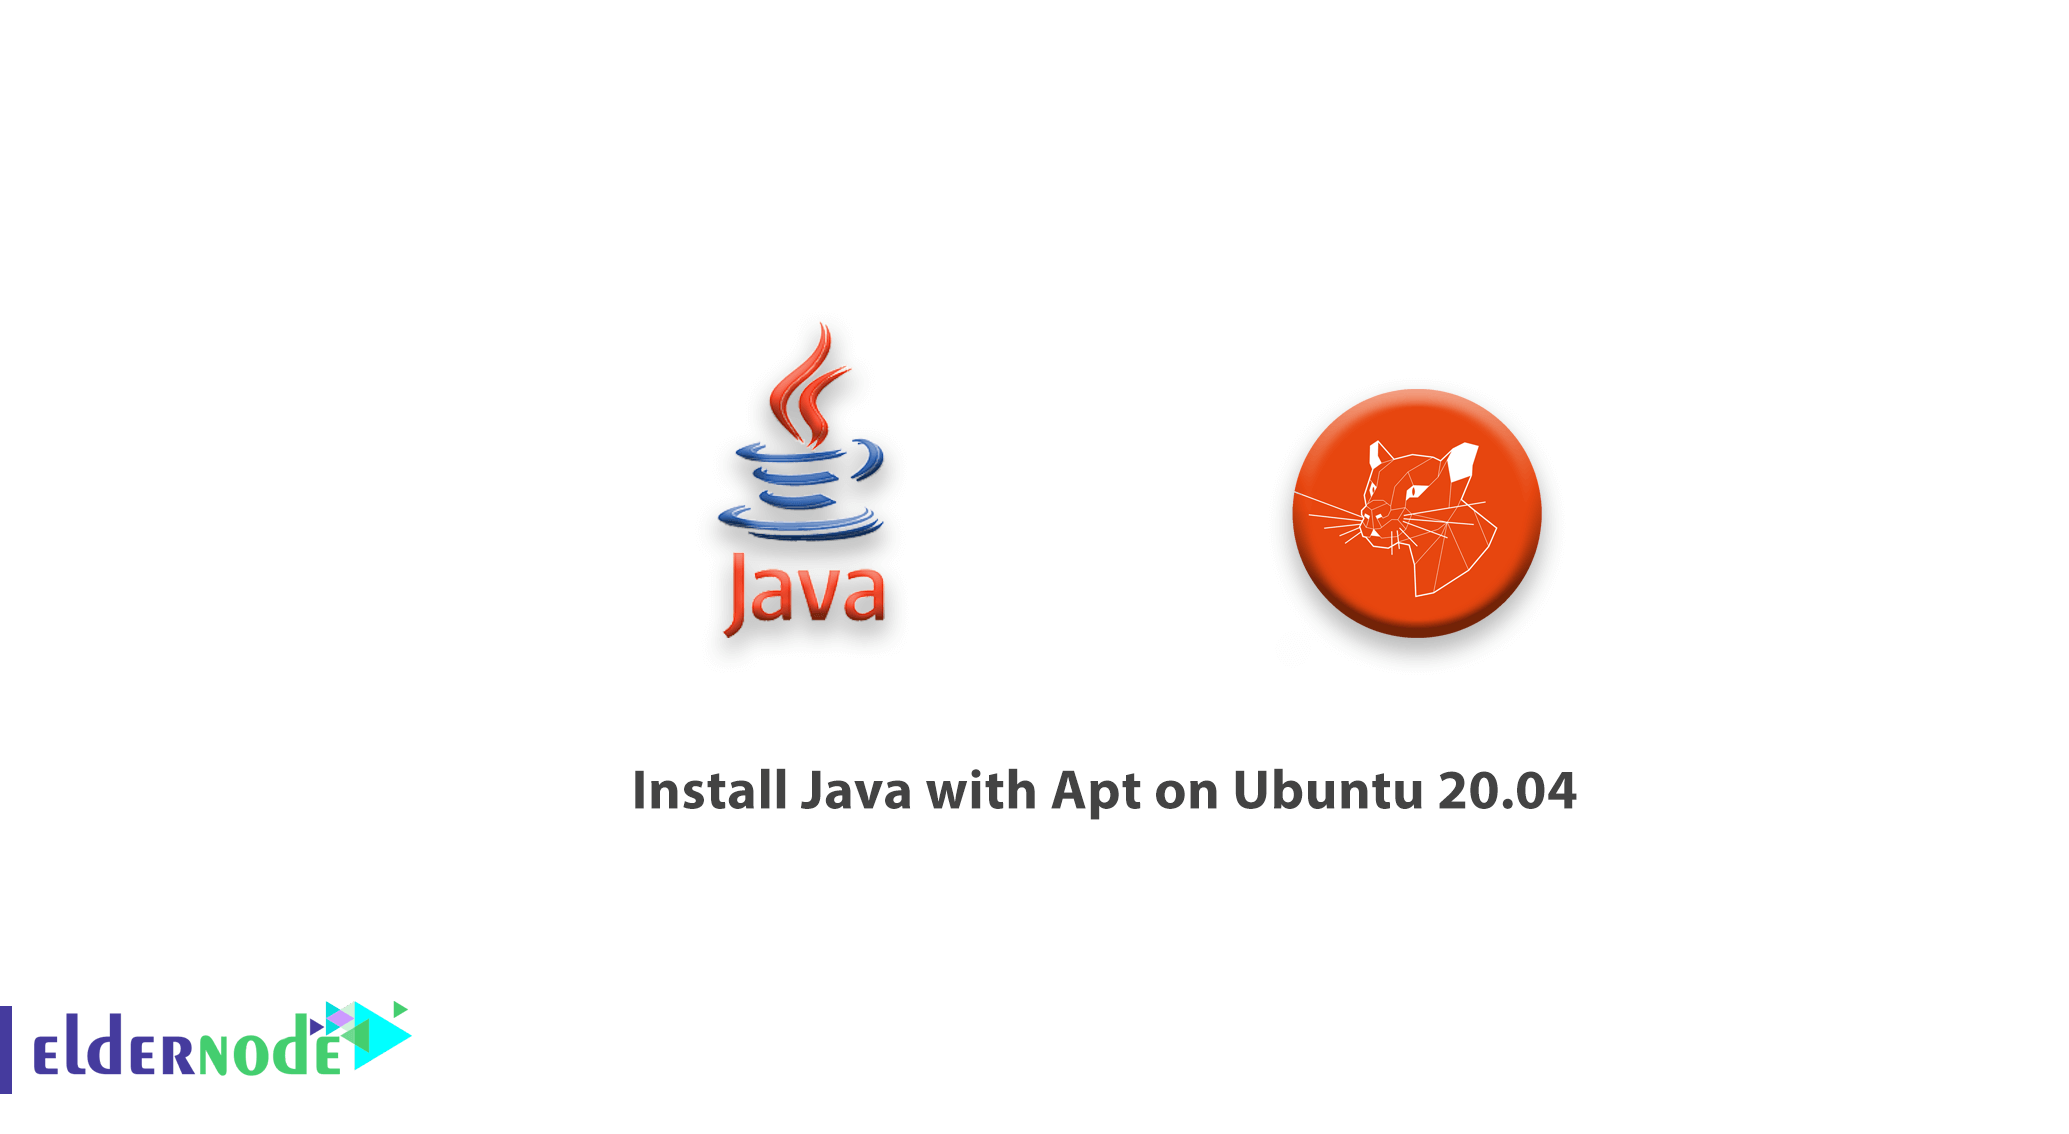 How to install Java with Apt on Ubuntu 20.04